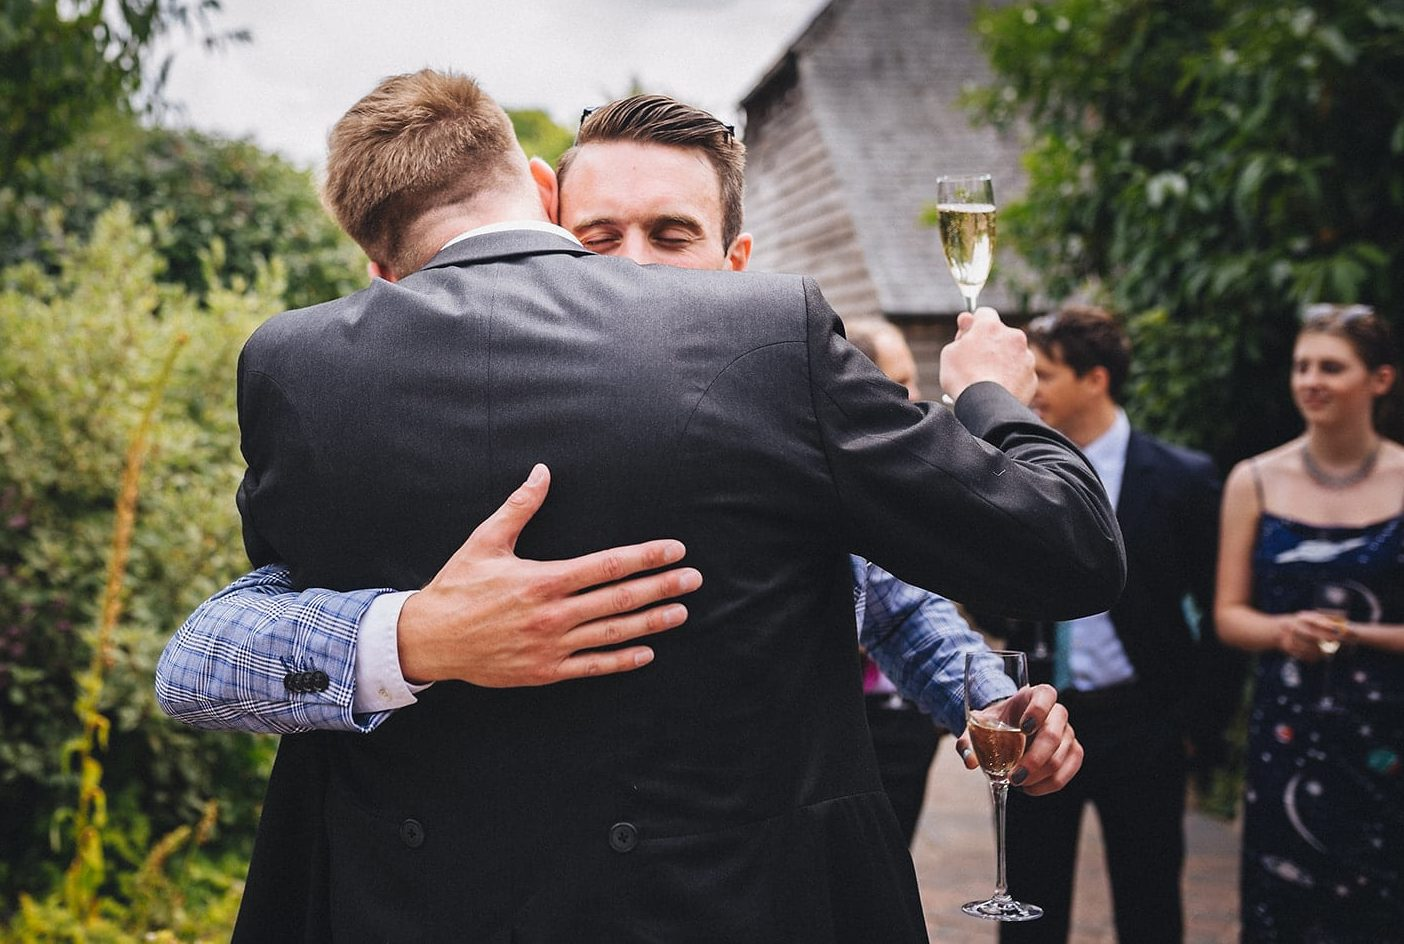 Wedding guest tightly hugging the groom